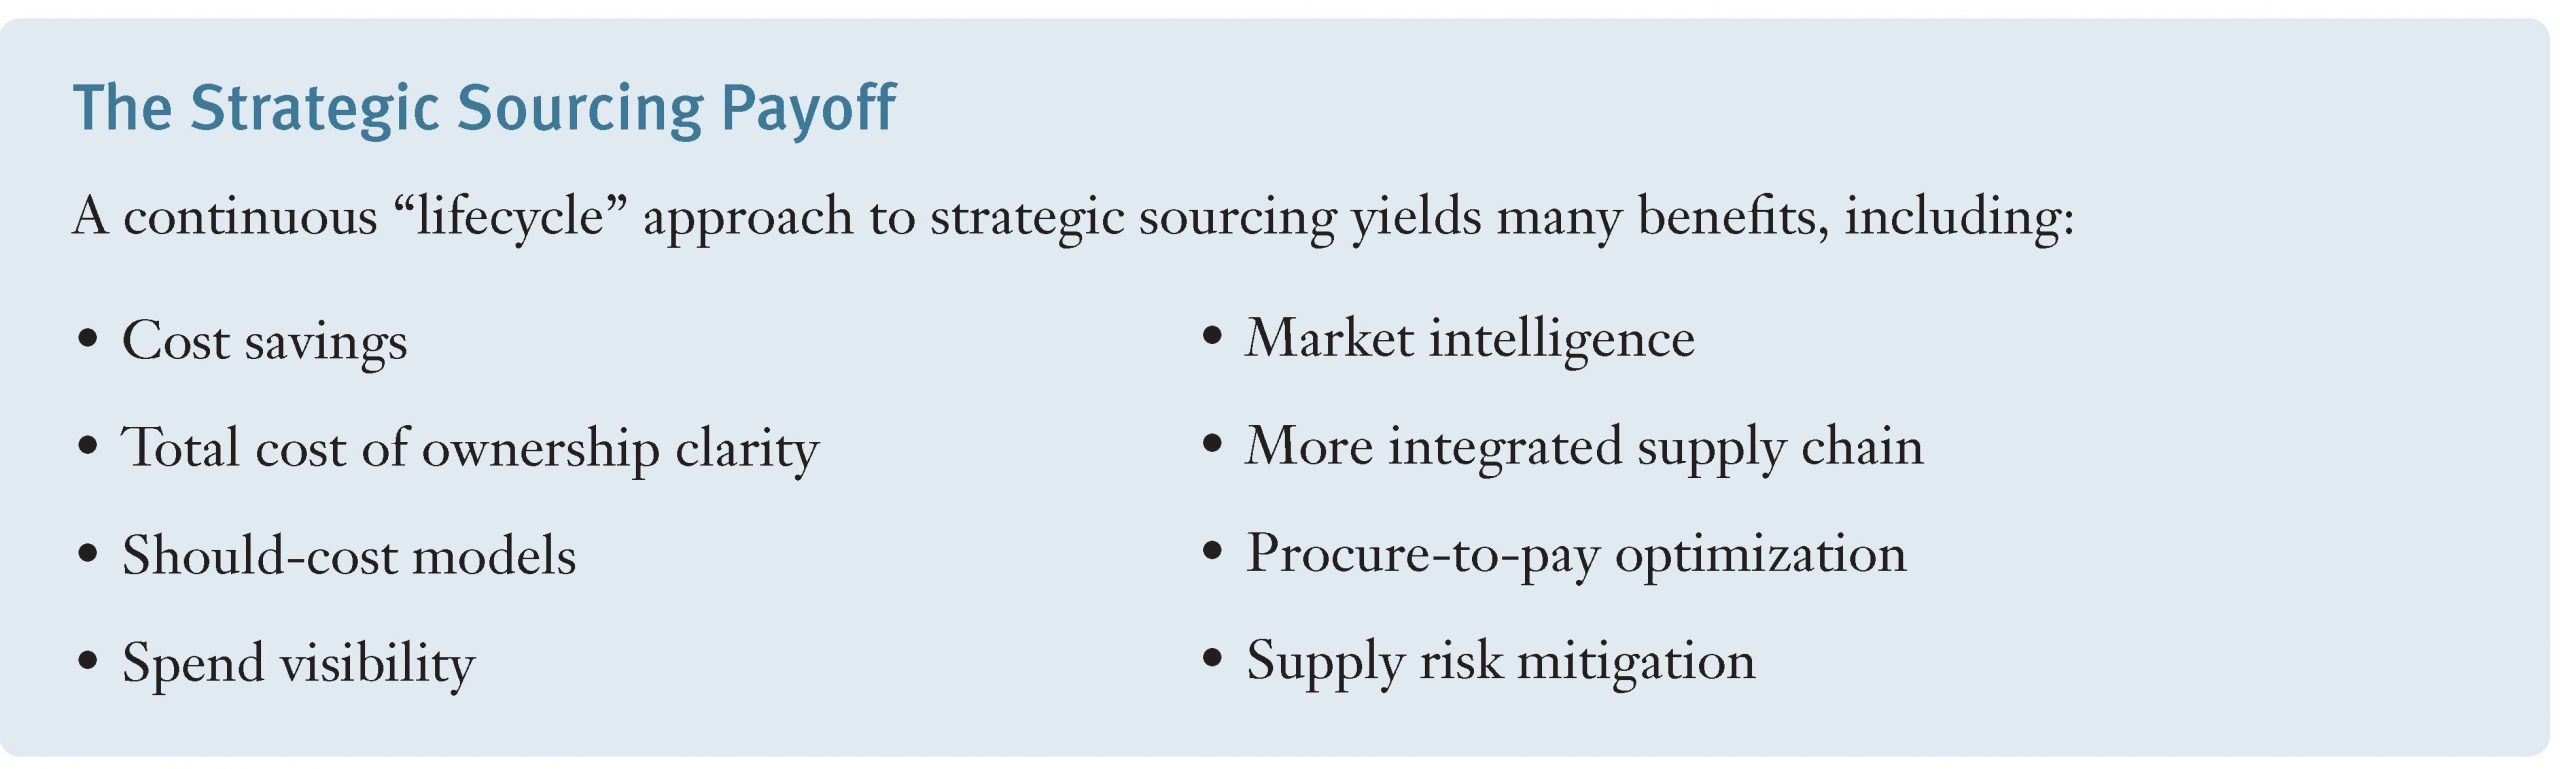 Strategic Sourcing Payoff